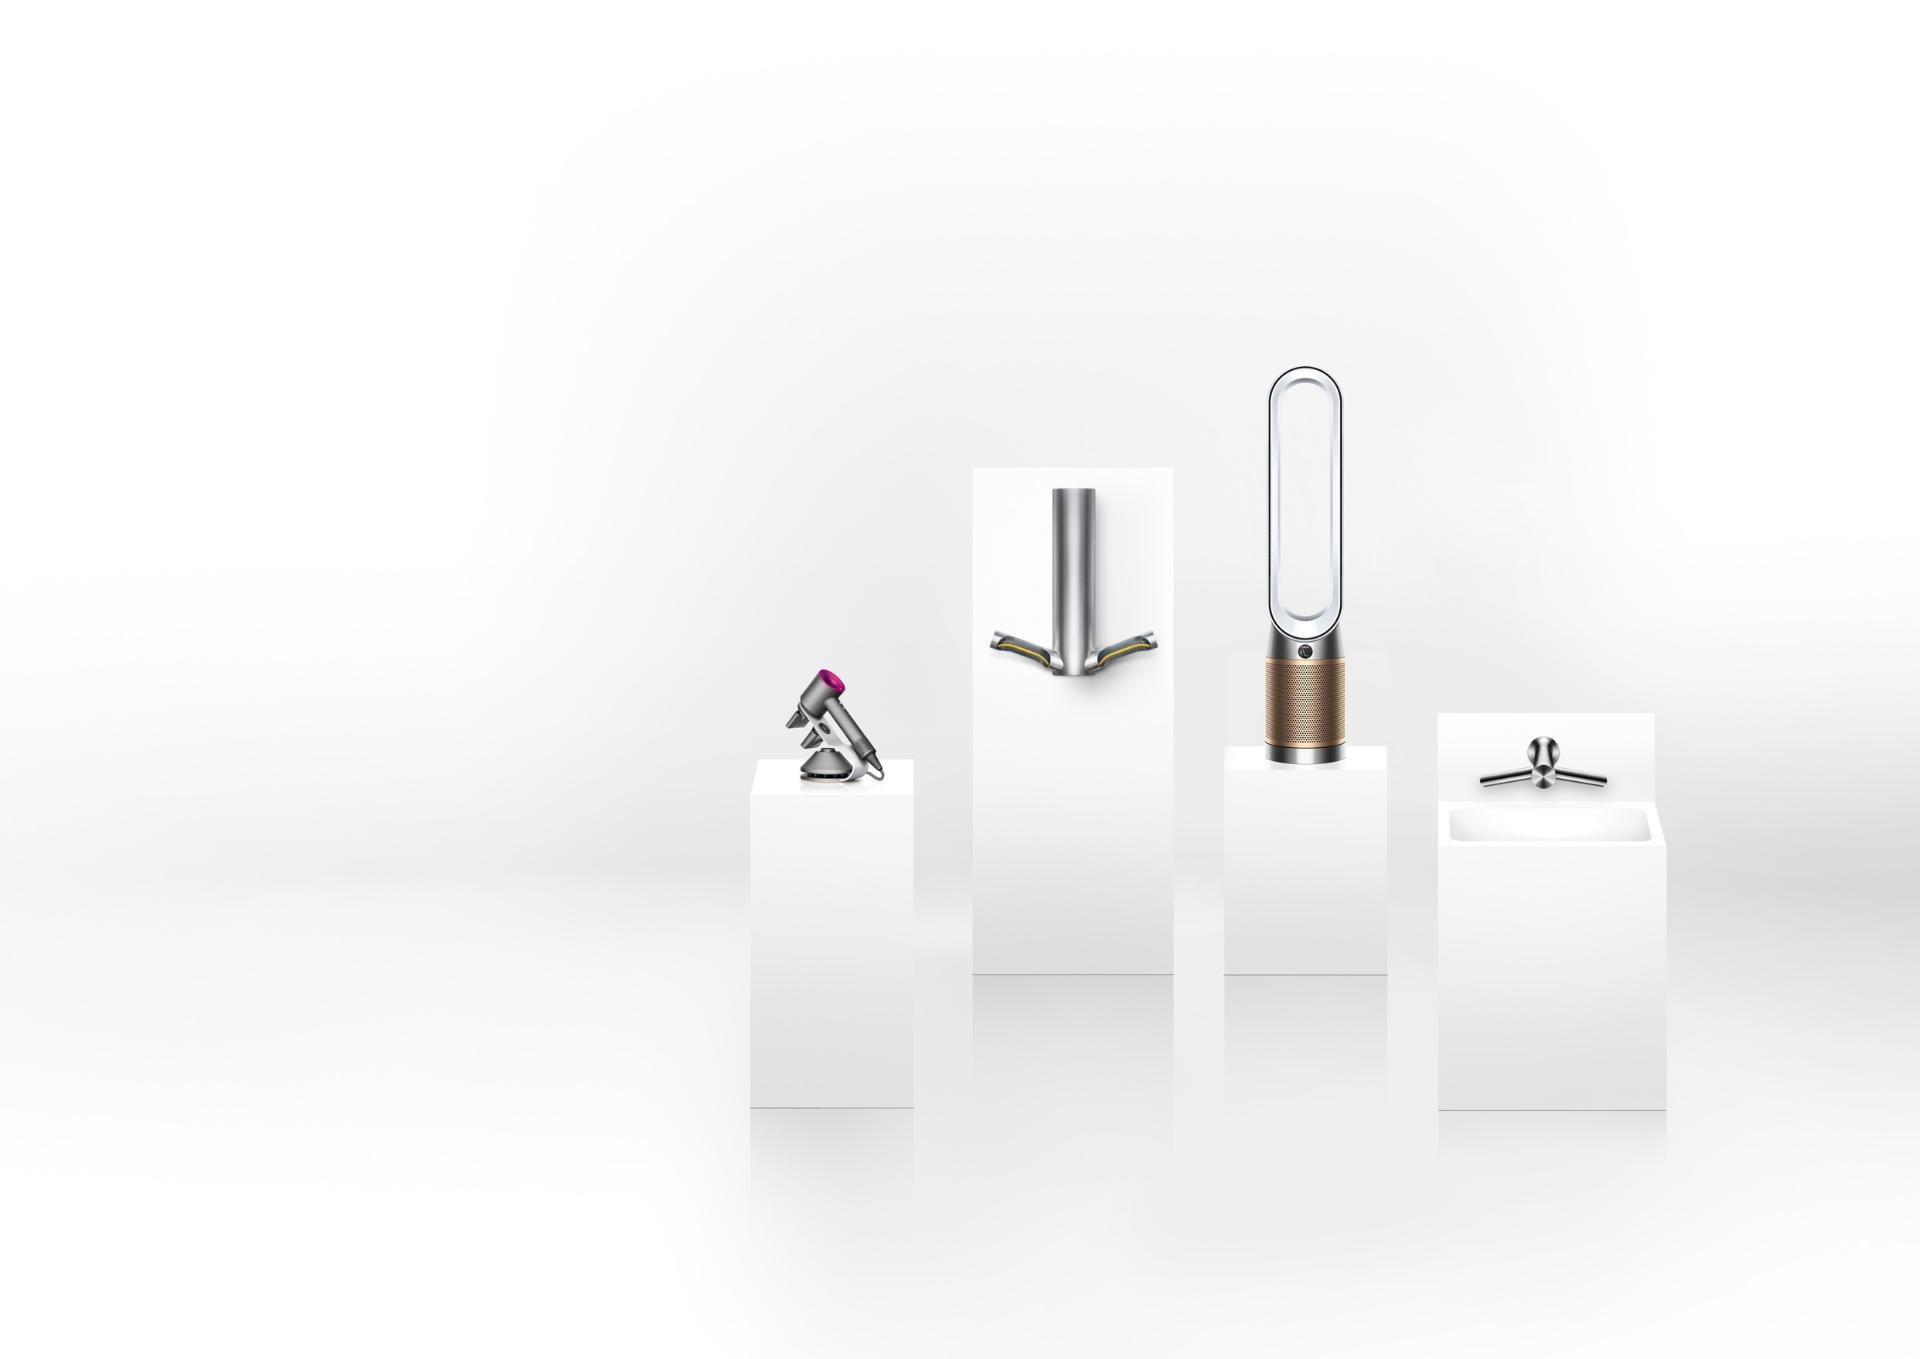 Photograph of the Dyson business range